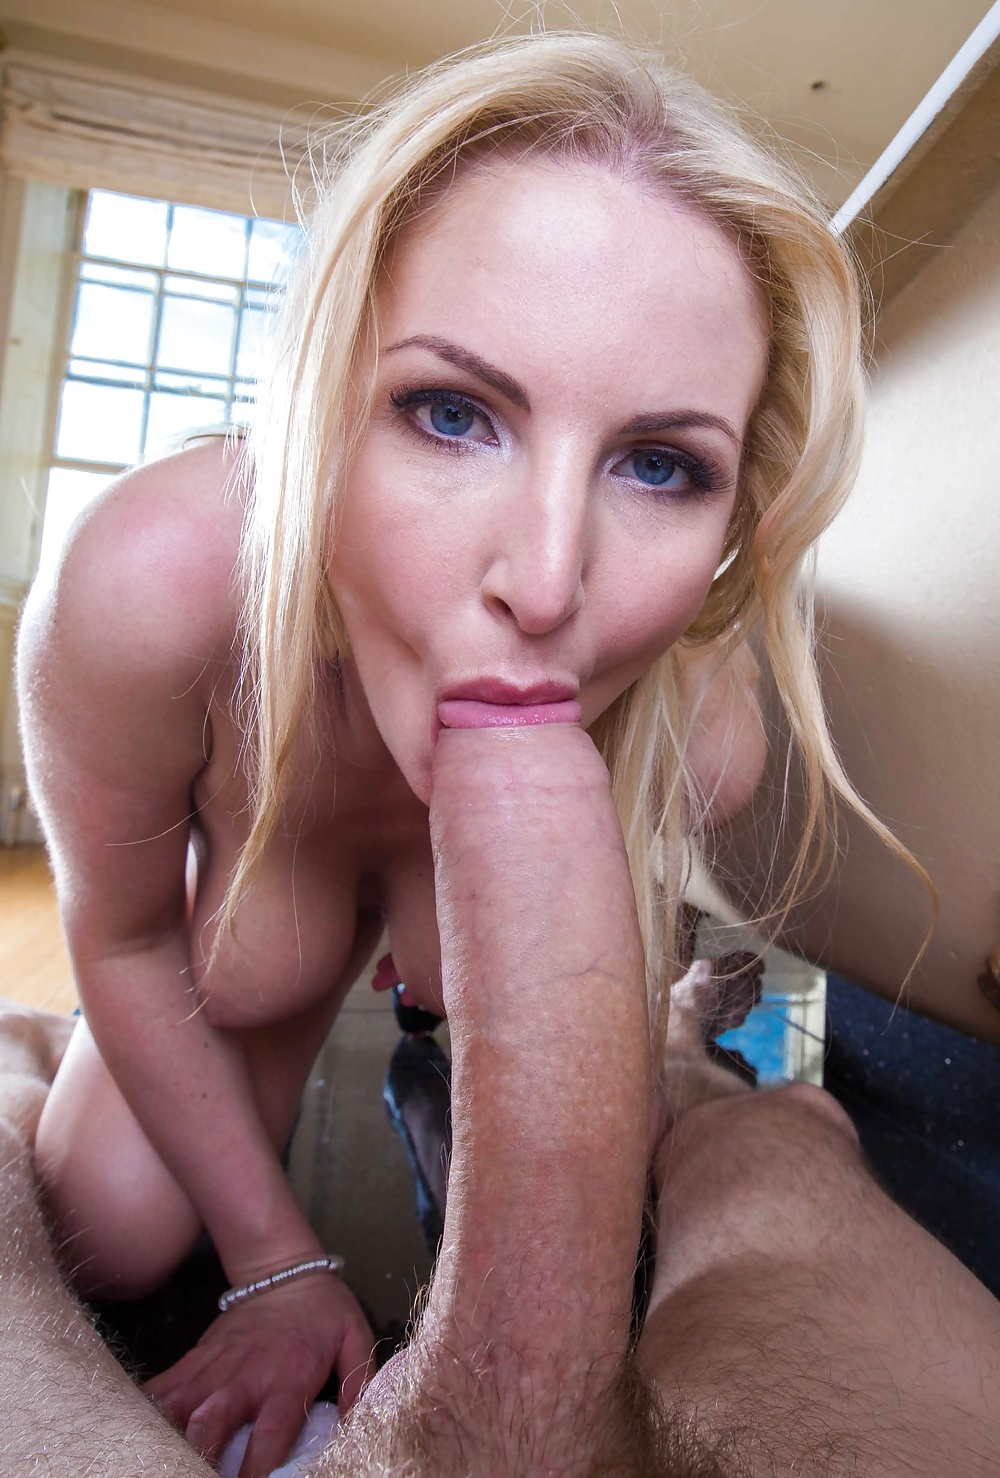 Blonde Sucks Huge Dick 28